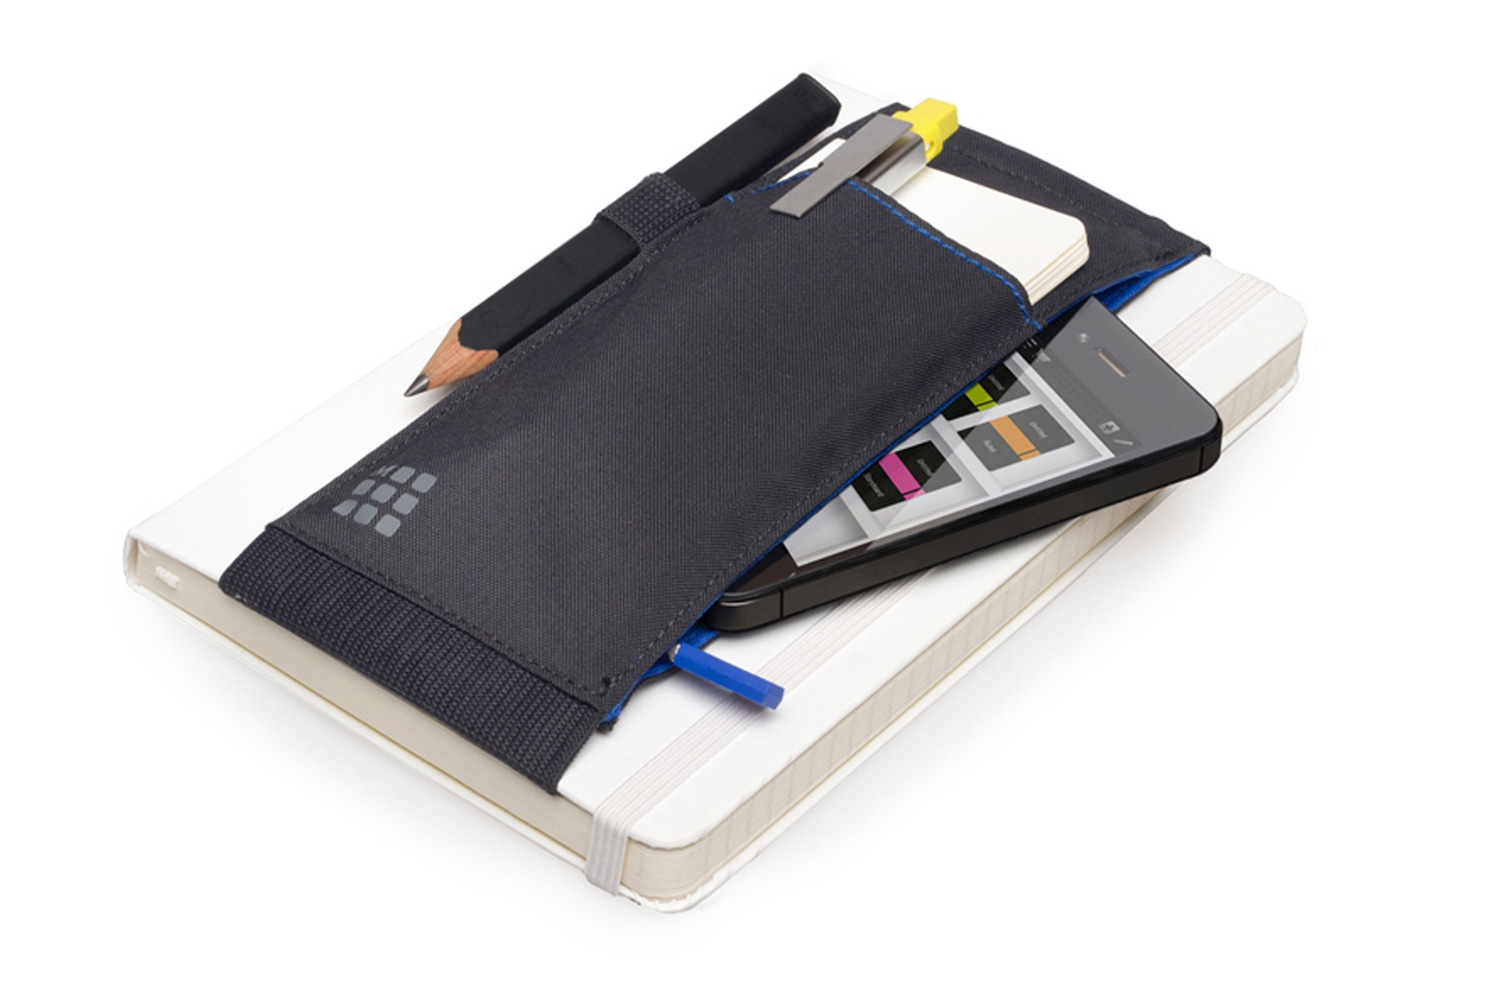 Moleskine Tool Belt lets you strap your pens and phone to ...